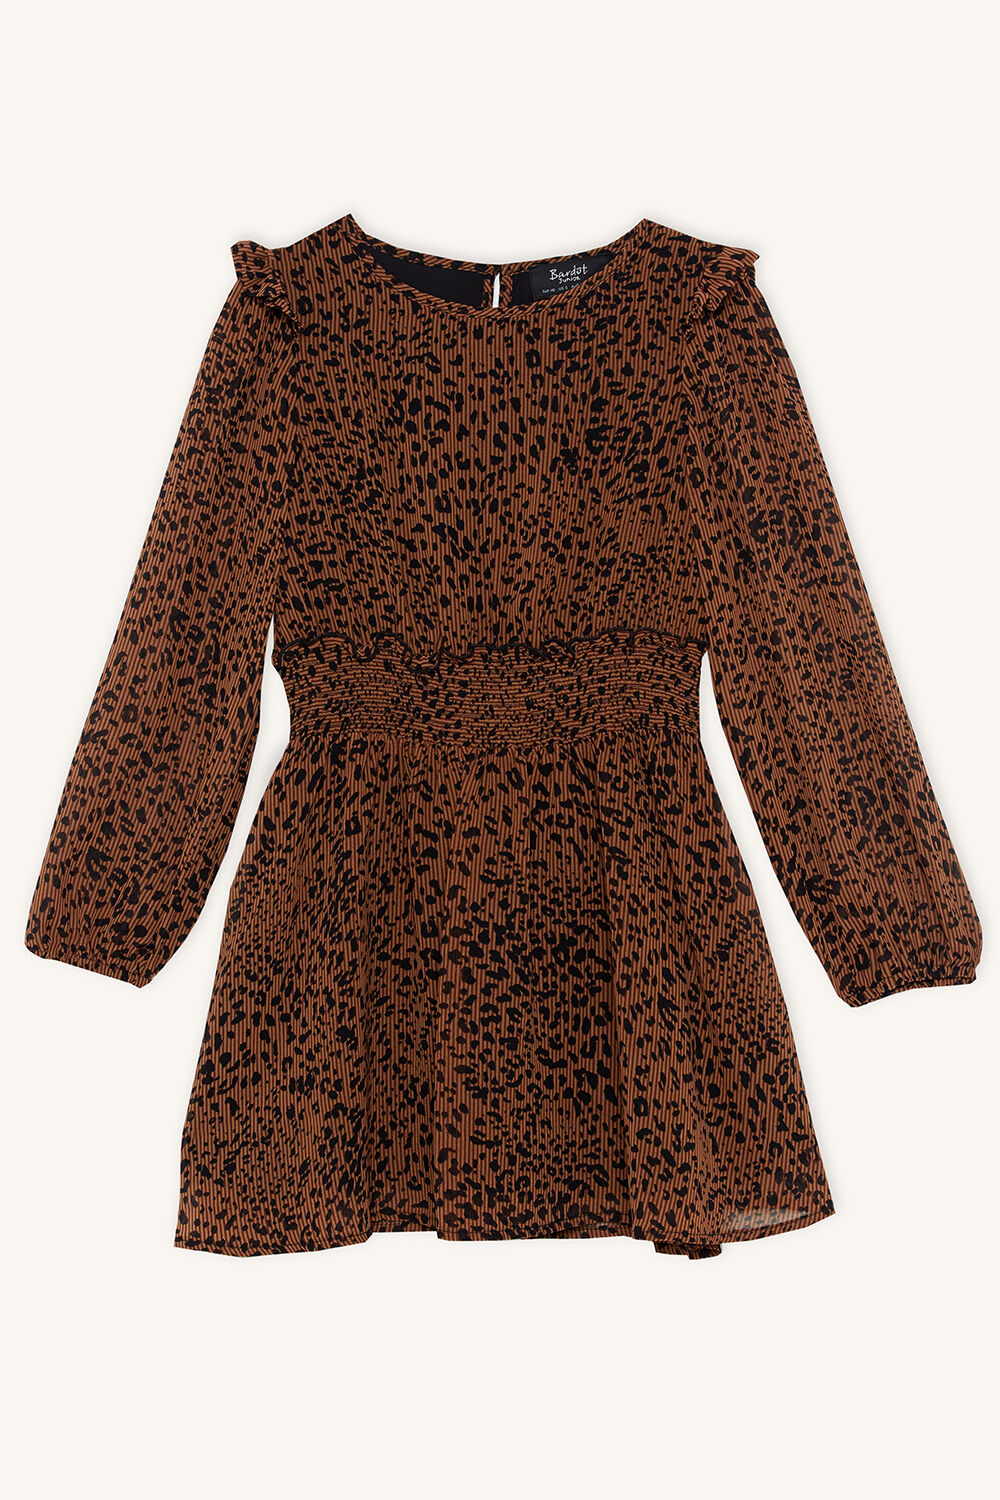 CICELY SHIRRED DRESS in colour TOBACCO BROWN